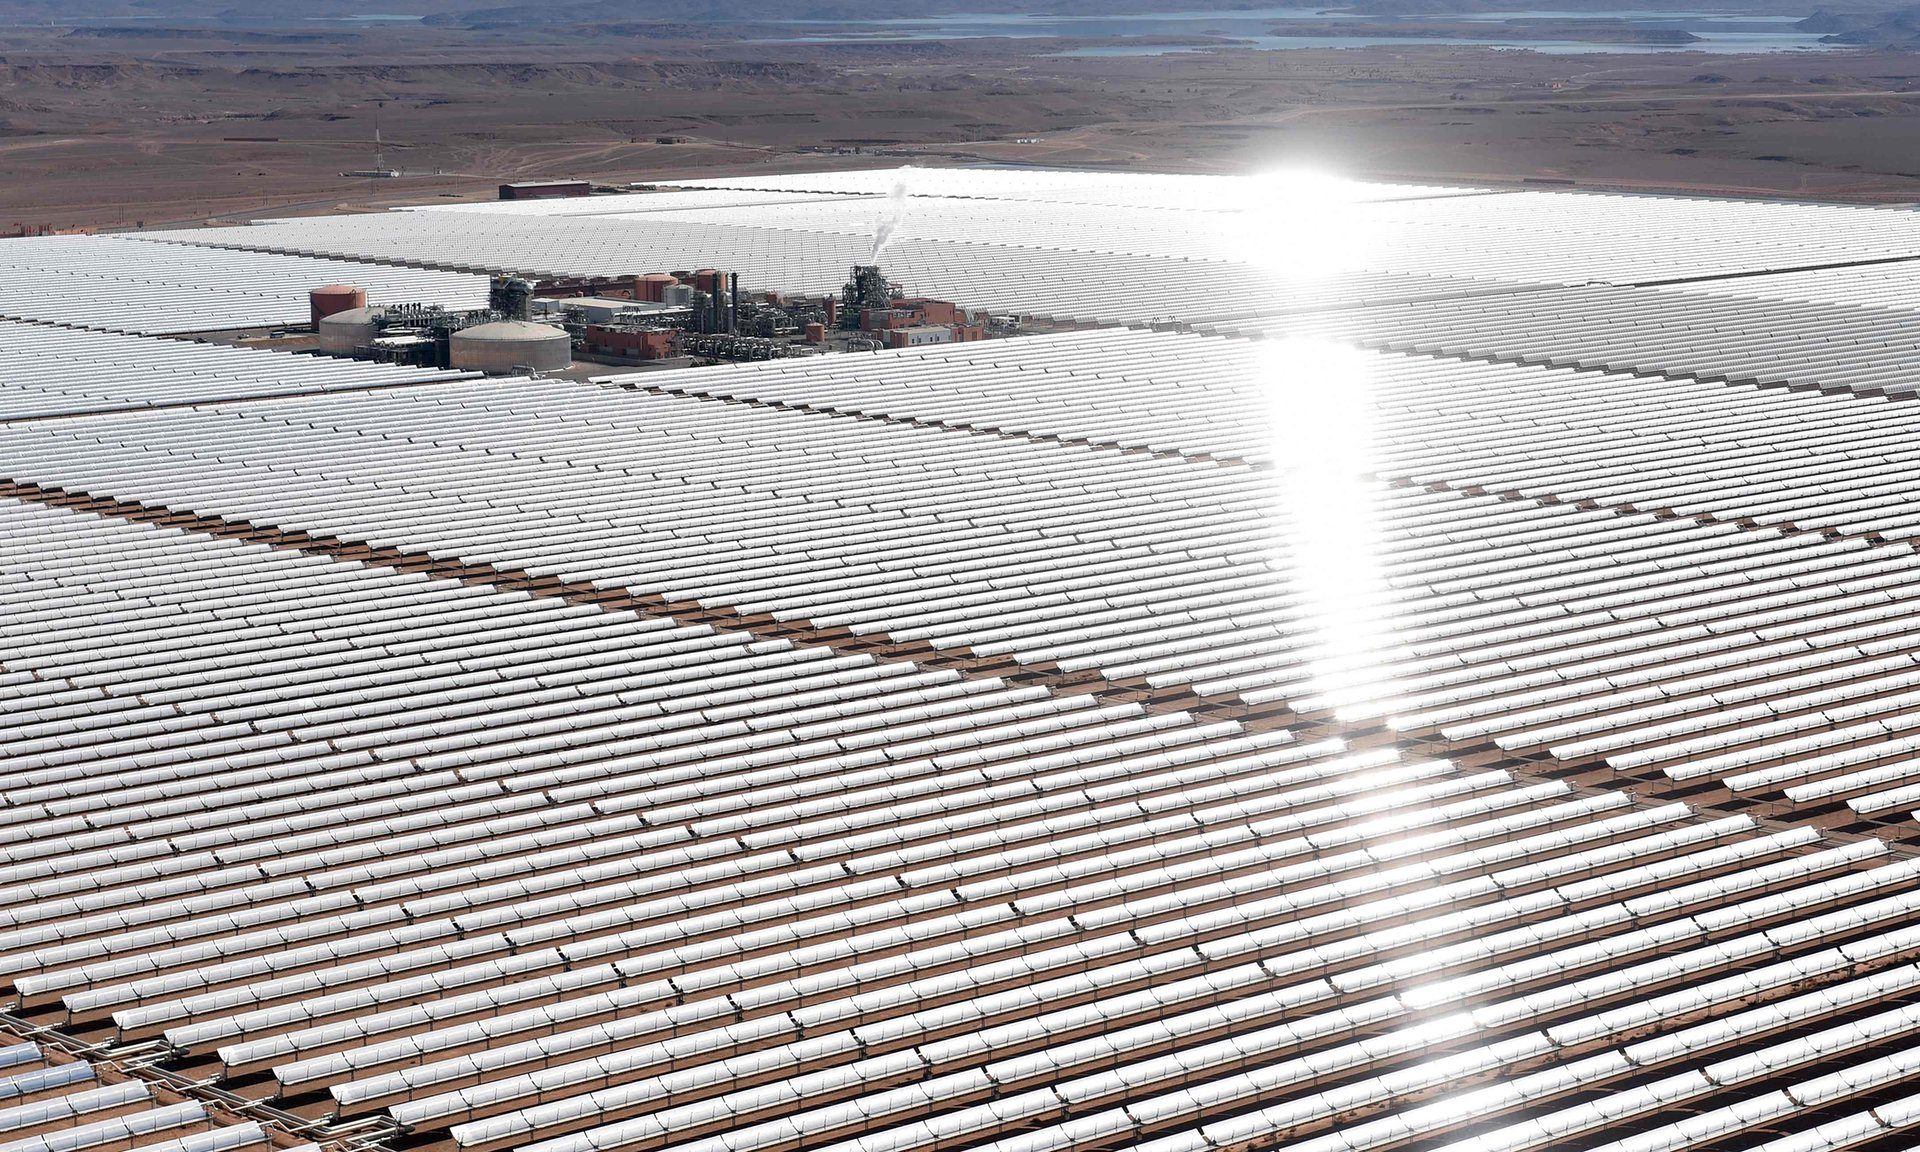 Nour 1 concentrated Solar Power Plant in Ouarzate Photograph: Fadel Senna/AFP/Getty Images